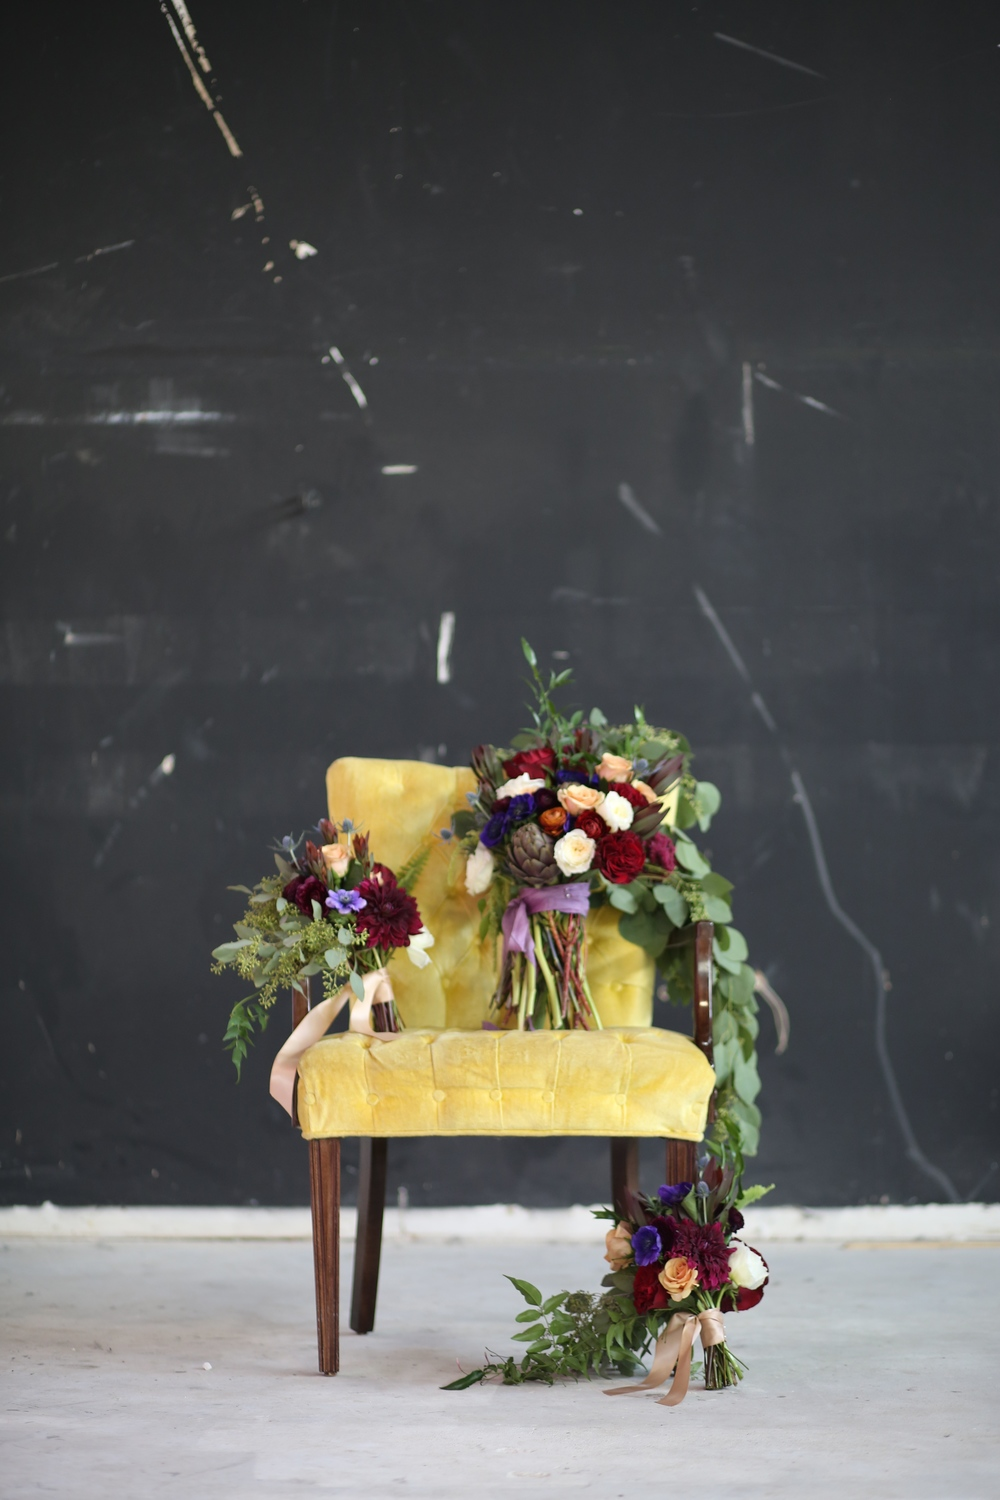 awesome flowers + gorgeous chair  = awesome shot